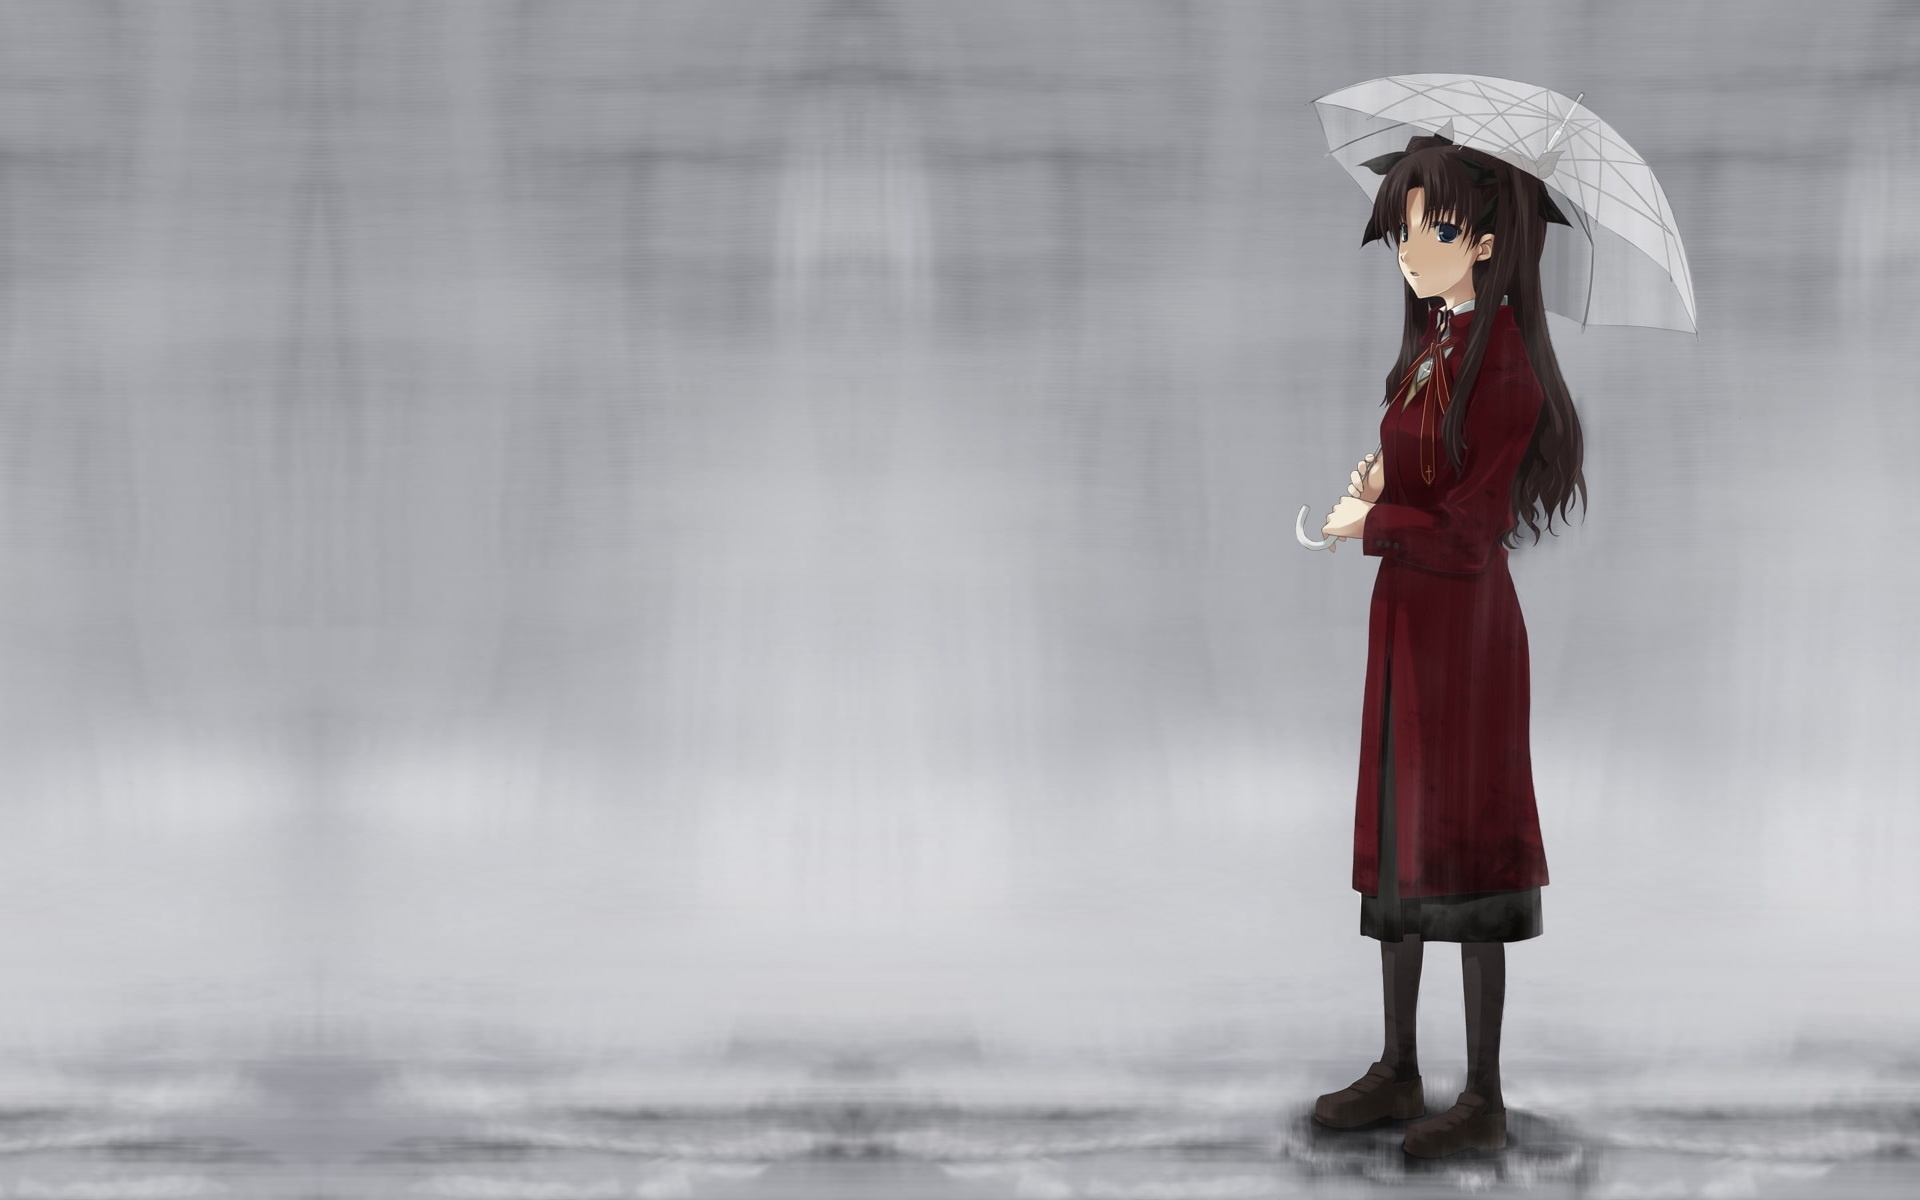 girl_walking_in_rain-wide